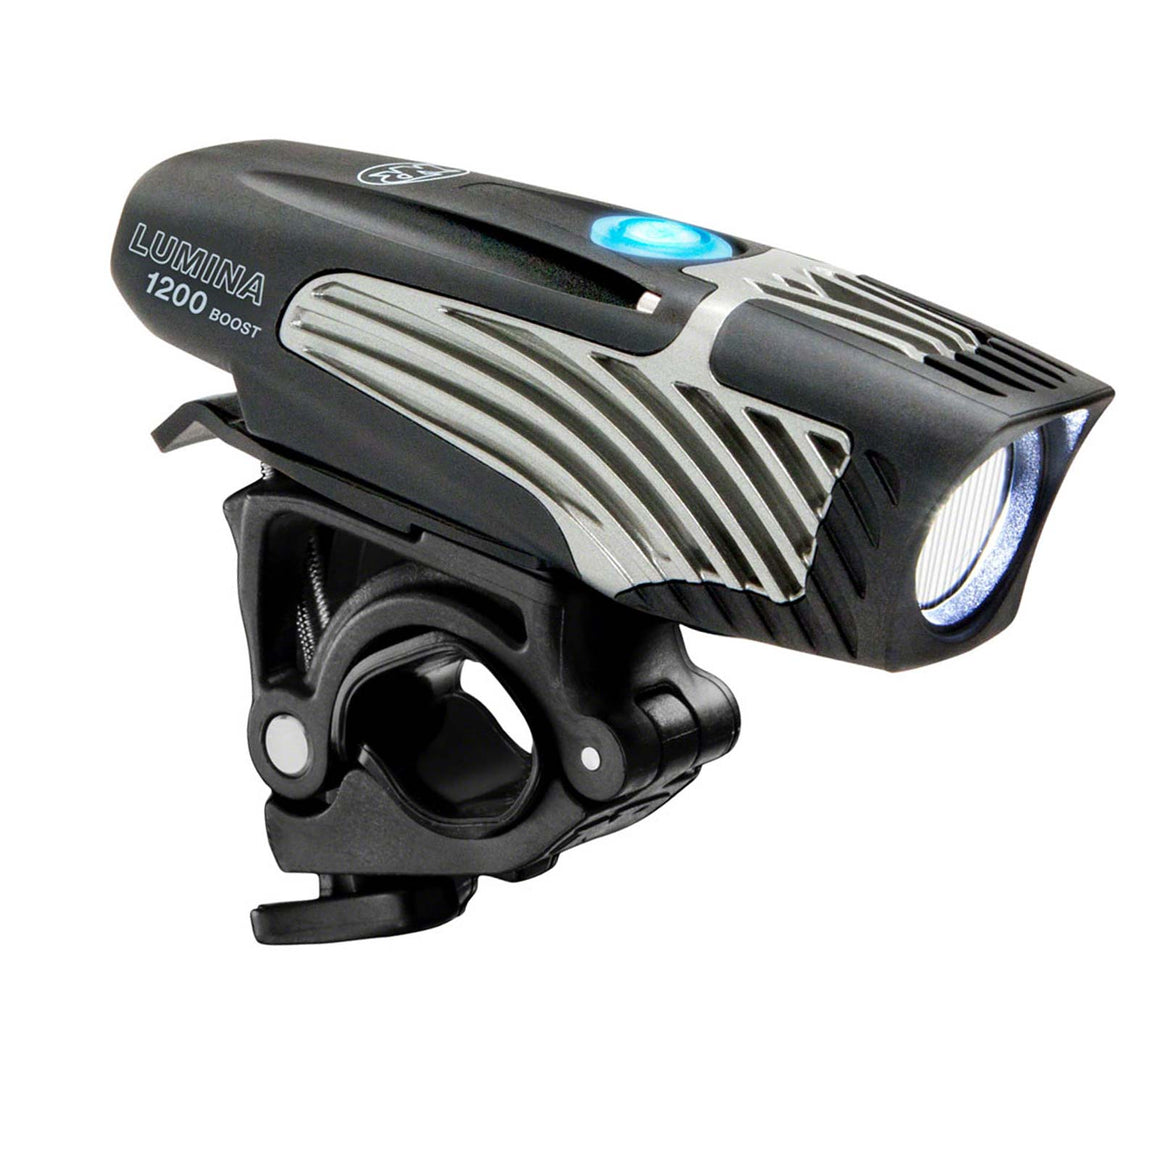 NiteRider Lumina 1200 Boost Bicycle Headlight